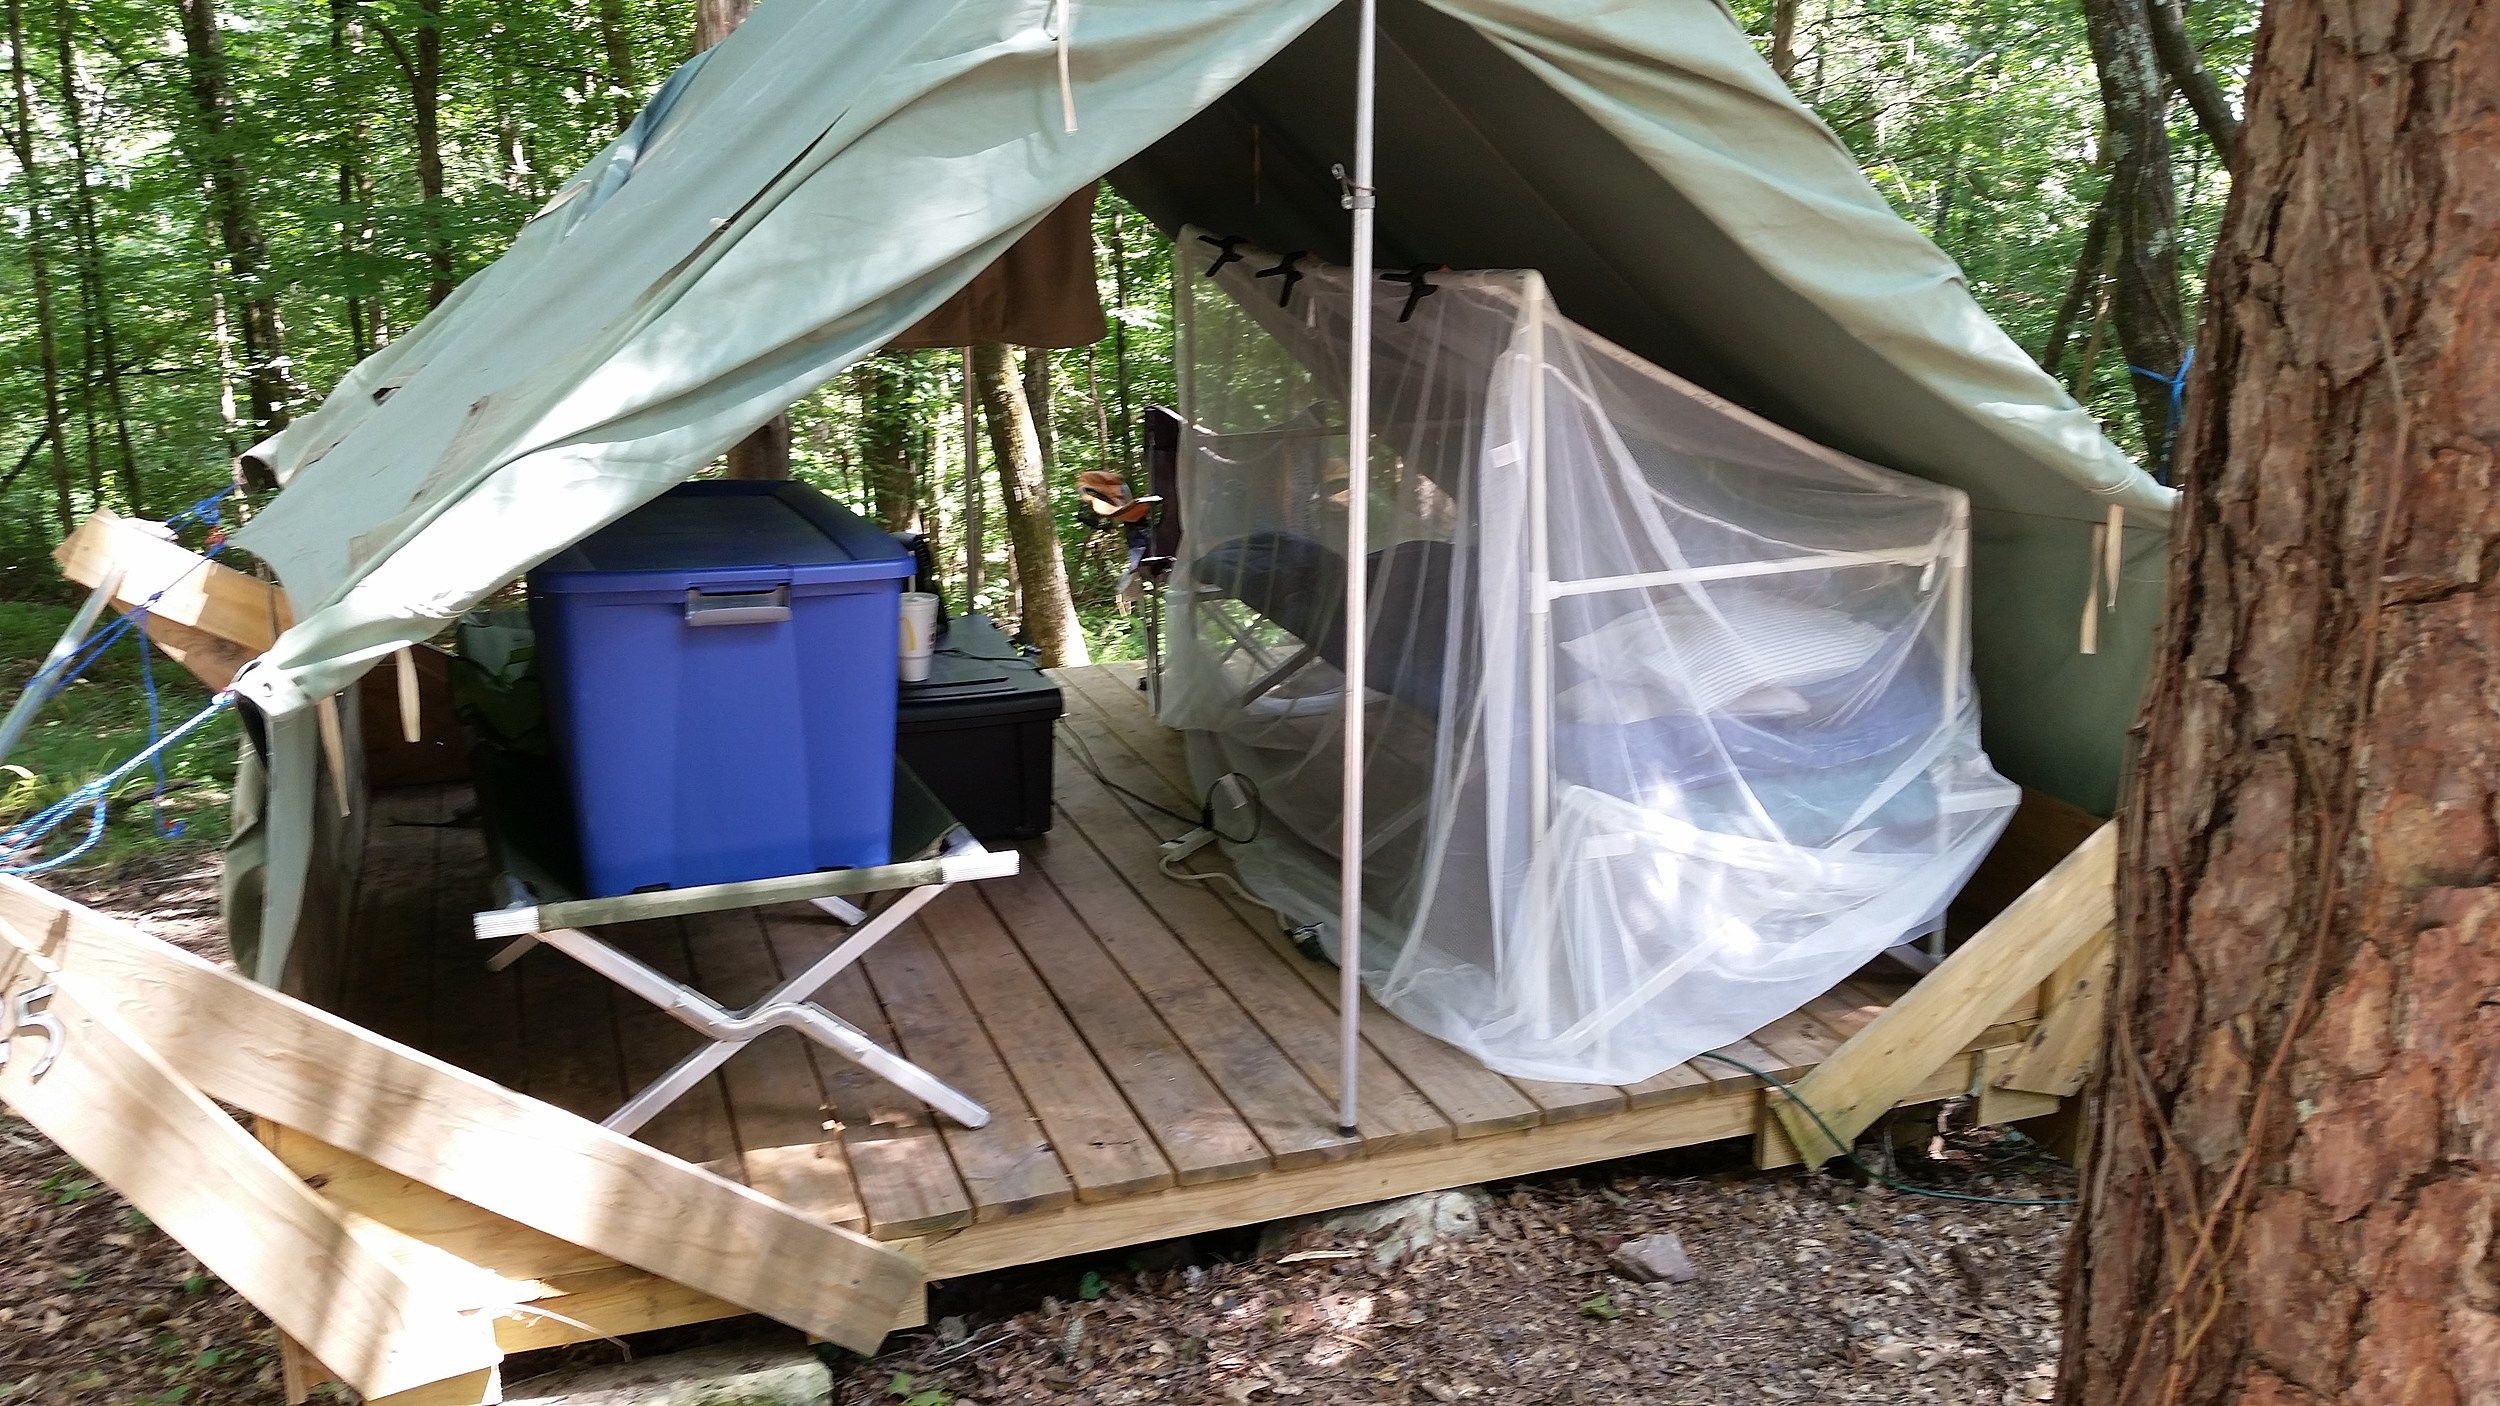 & UPDATE: Mosquito Net Bed Frame For Camp - Jim Weaver DIY